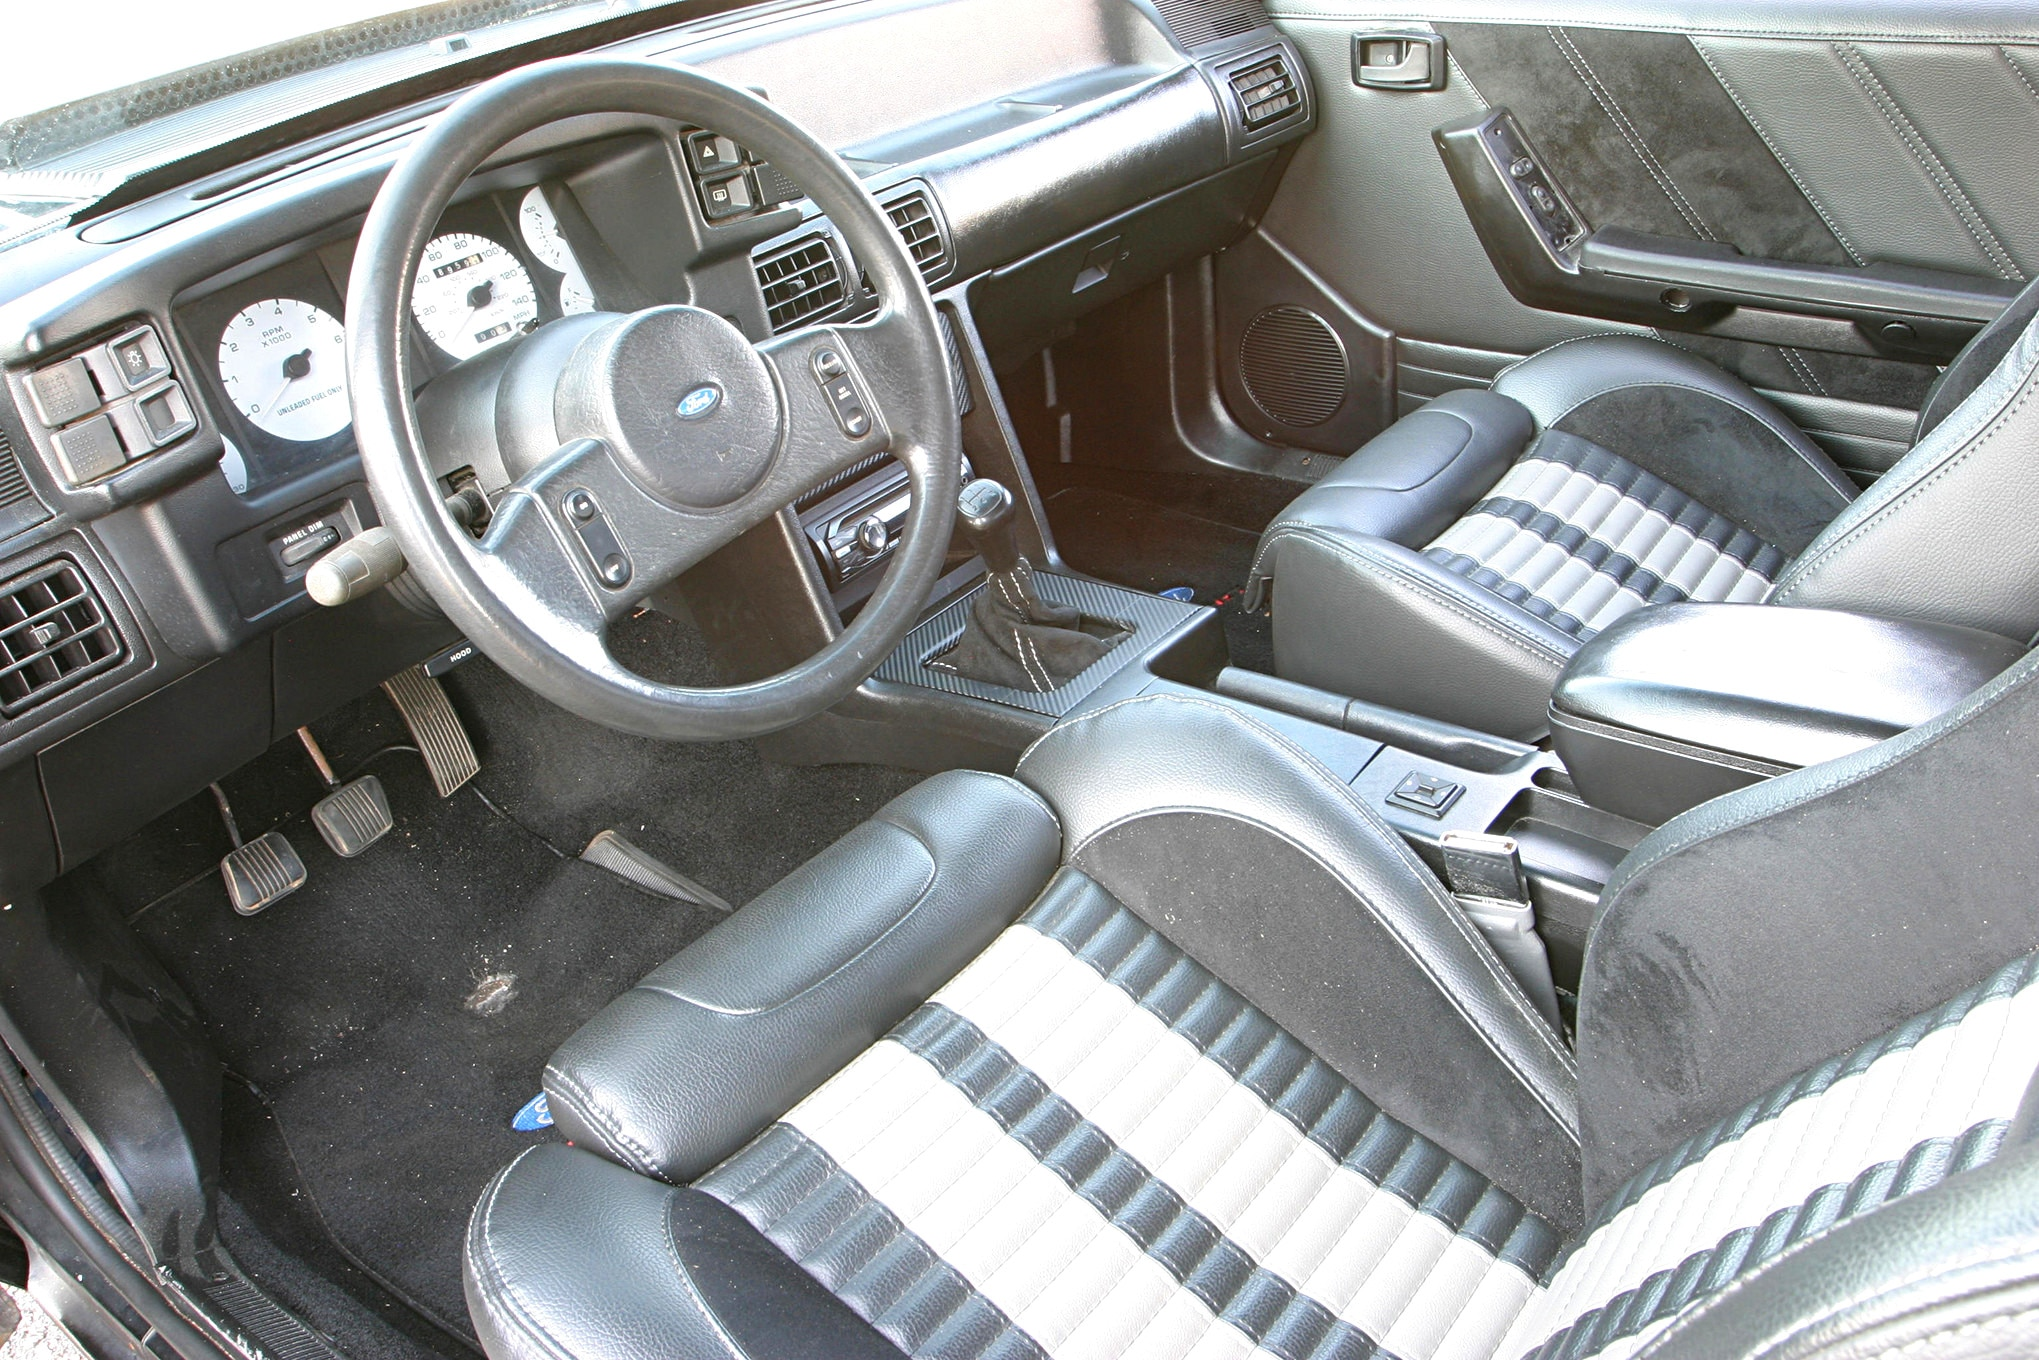 1988 Ford Mustang Lx Coupe Kody Smith Interior 3